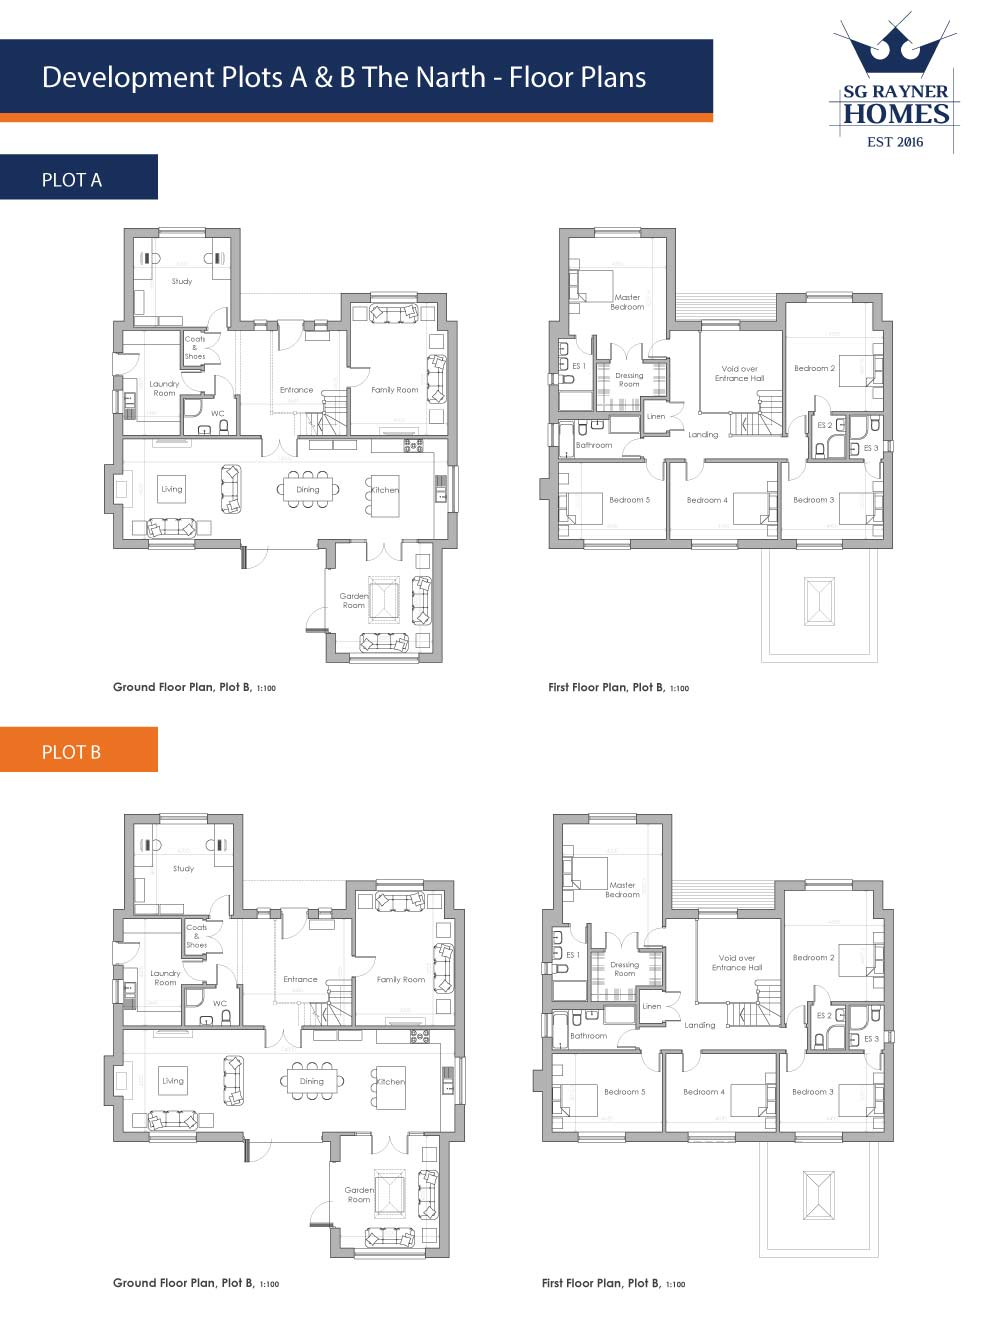 SG Rayner Homes - The Narth Floor Plans